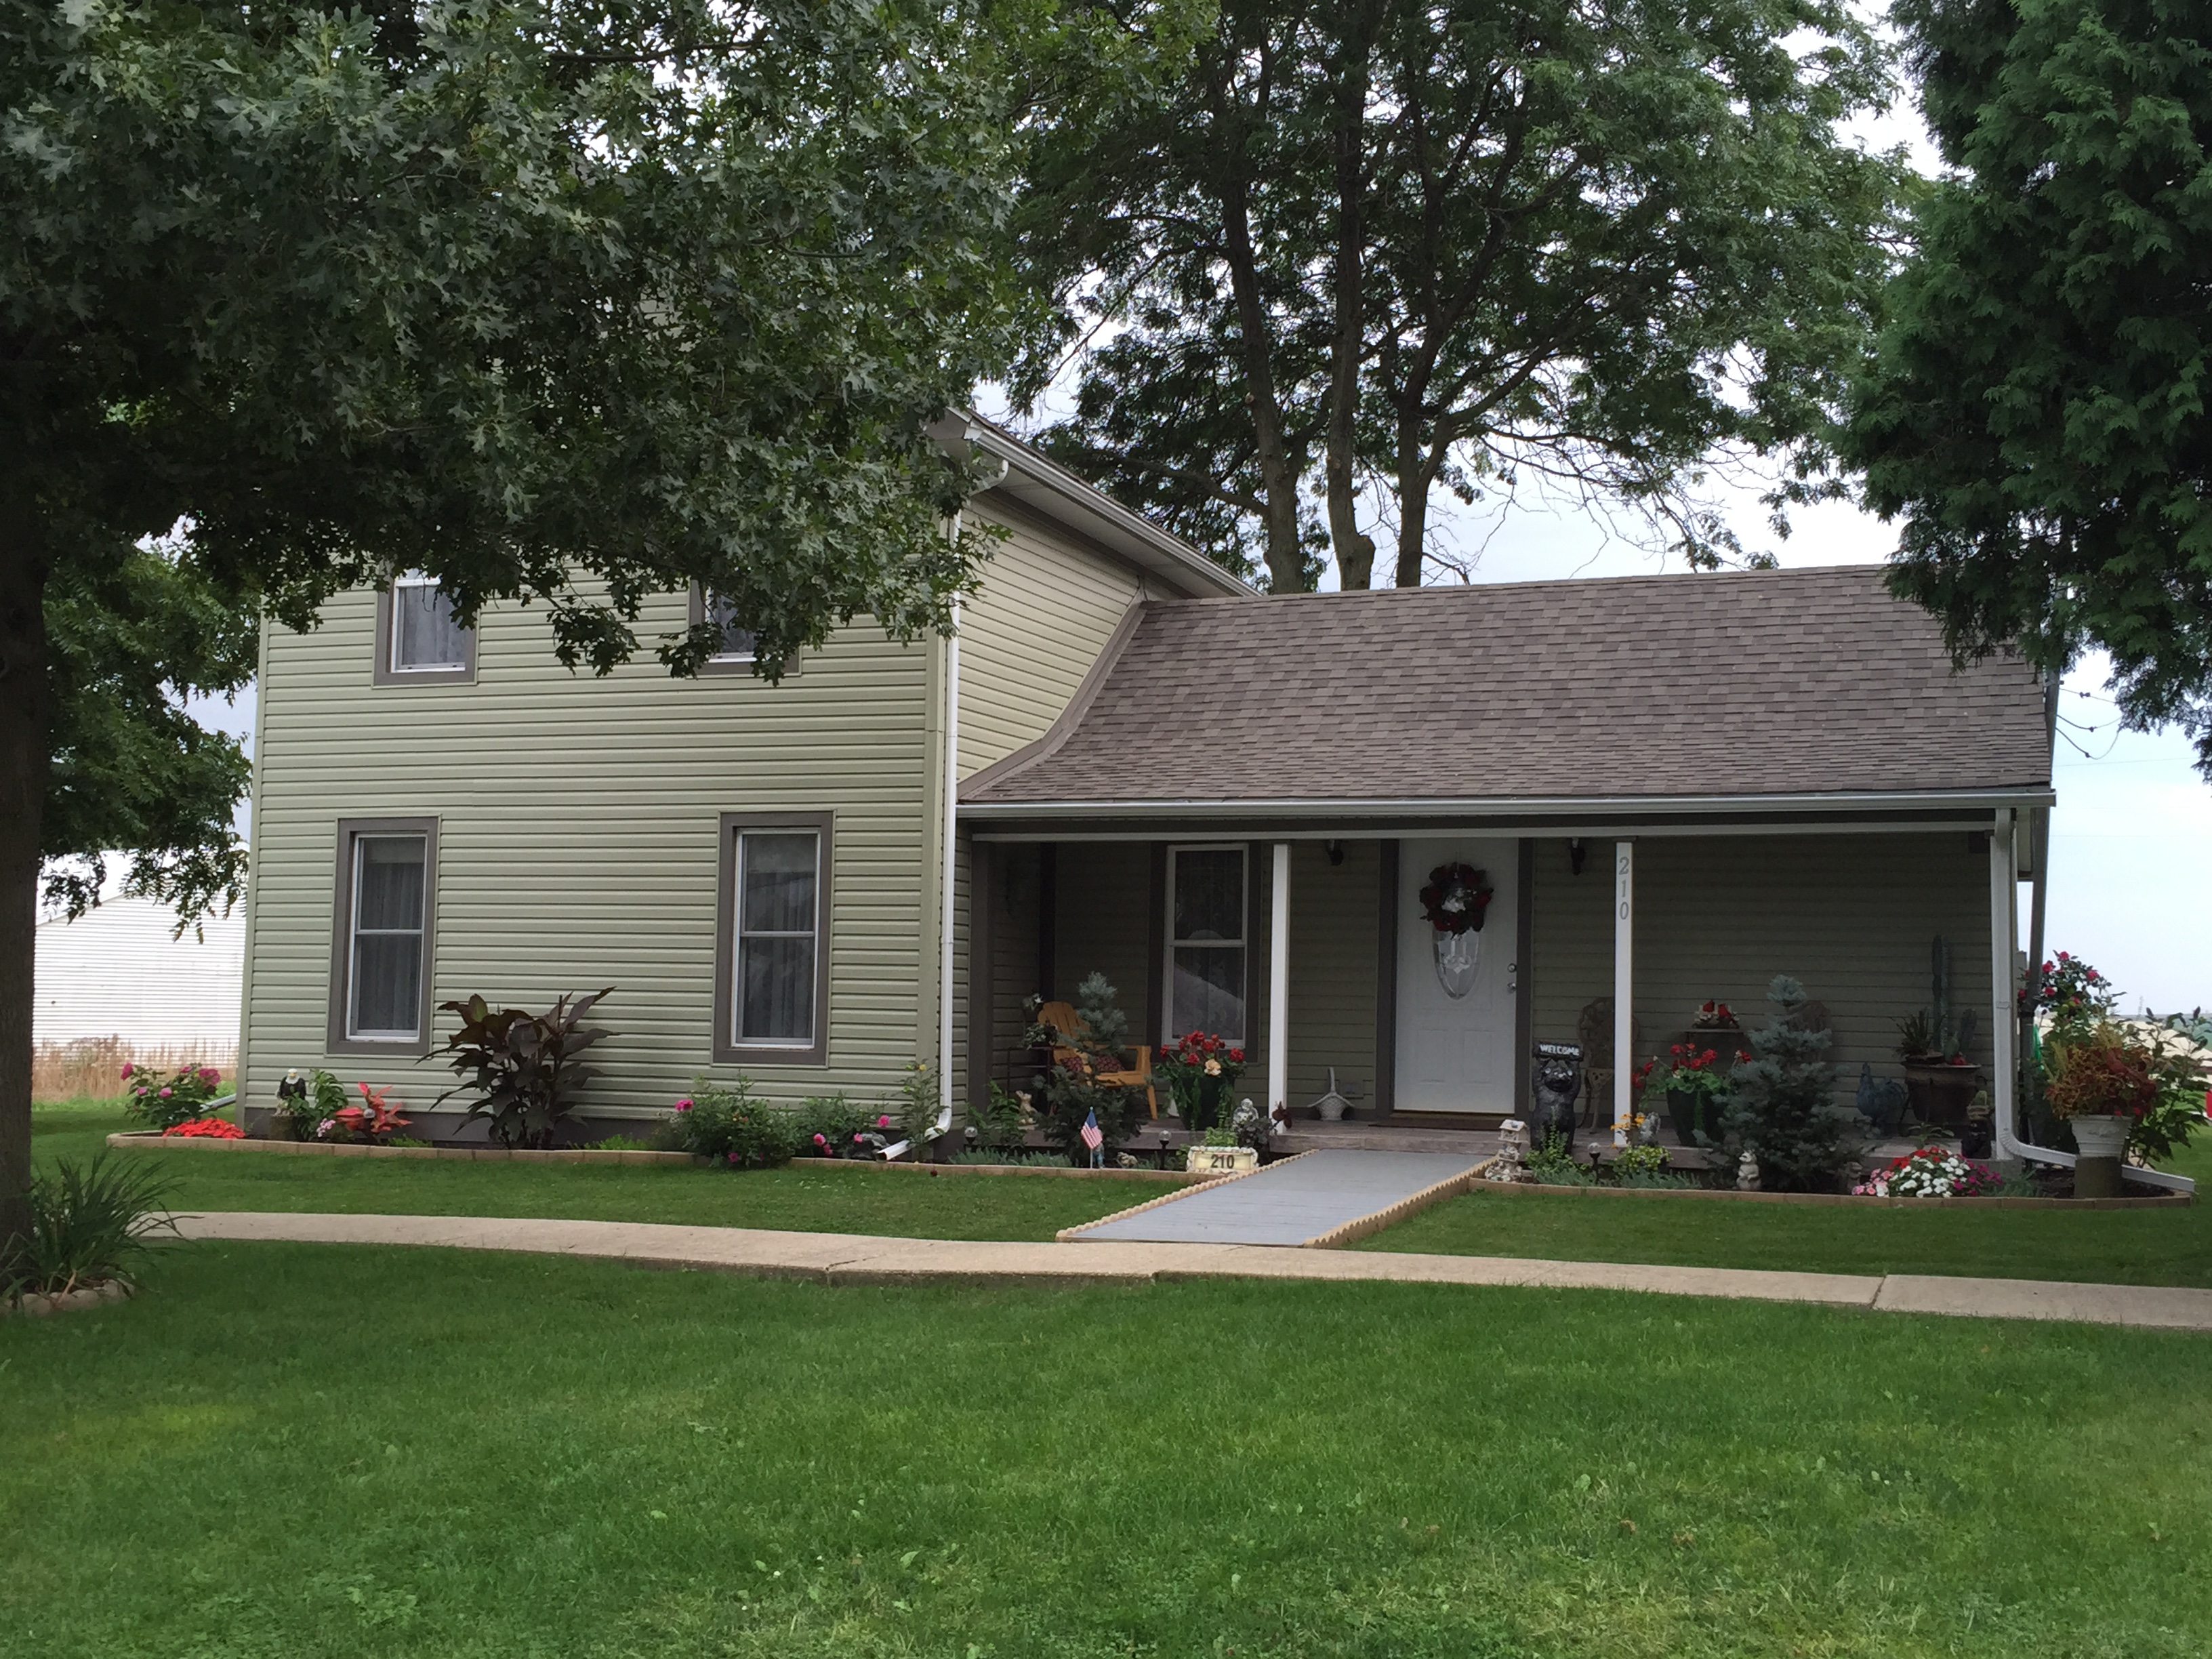 210 E Chester, Cabery, Illinois 60919